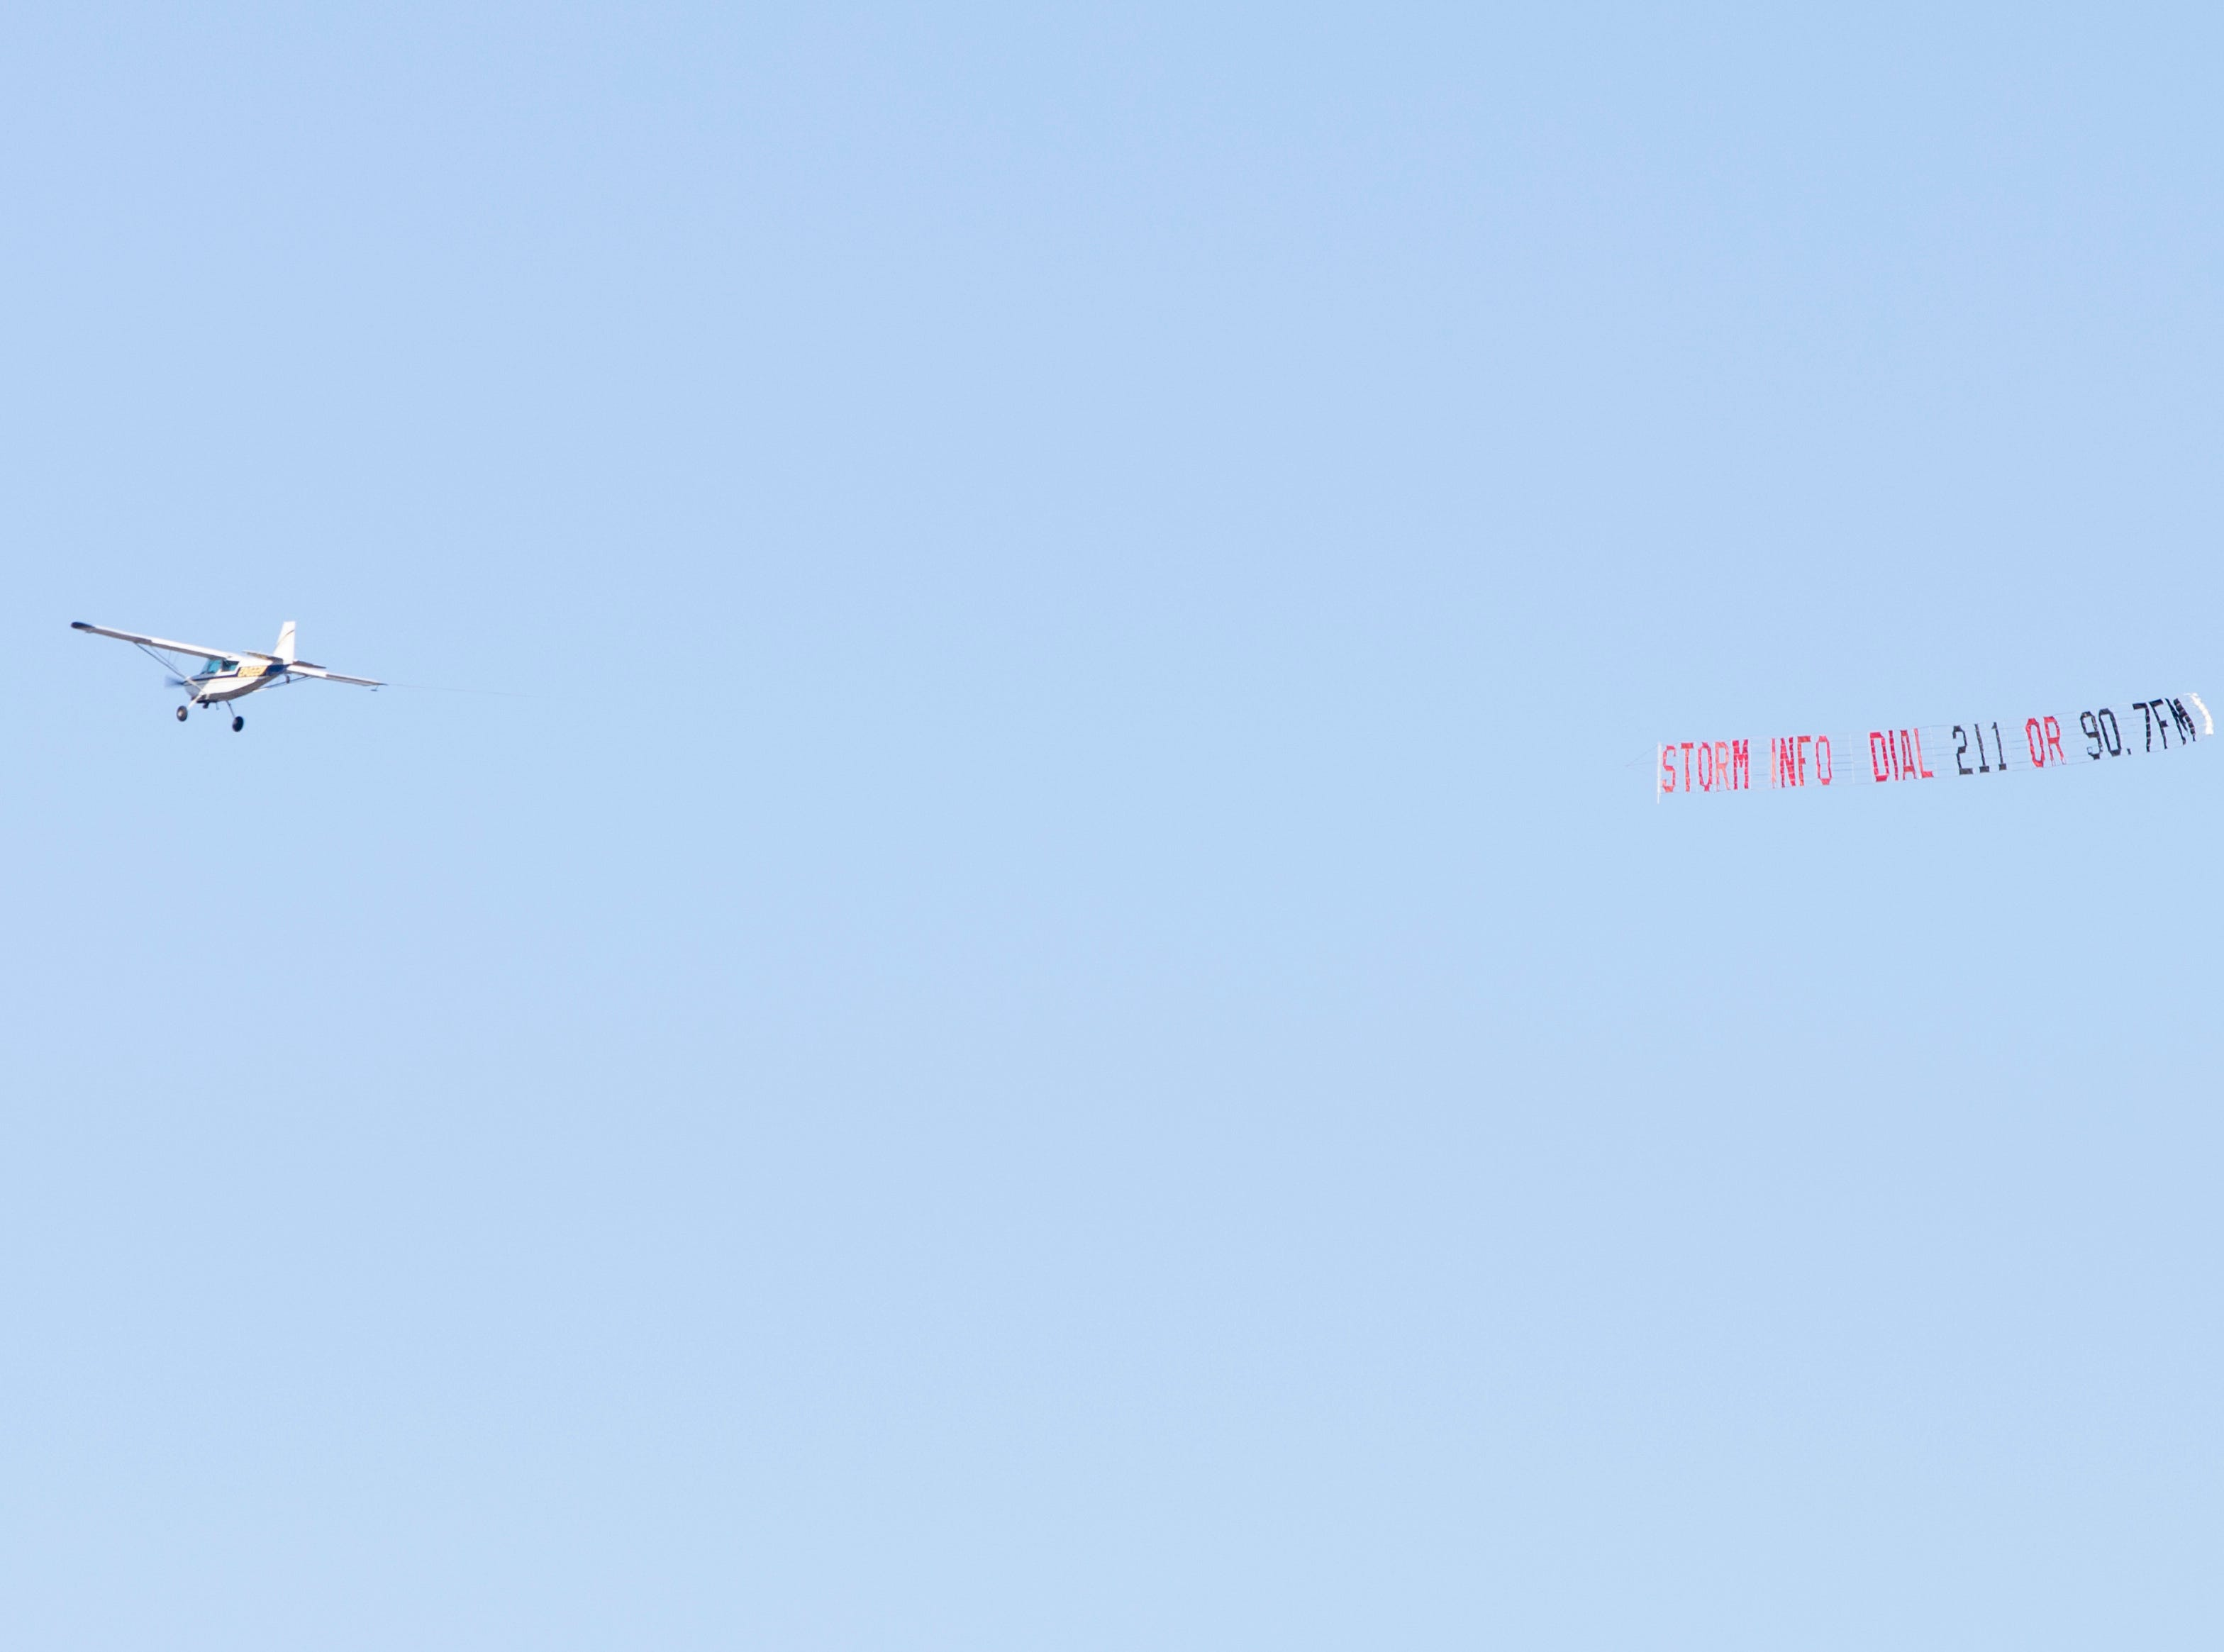 A plane flies over neighbors with a banner letting people know where to get storm information after Hurricane Michael in Panama City, Florida on Monday, October 15, 2018. (Via OlyDrop)